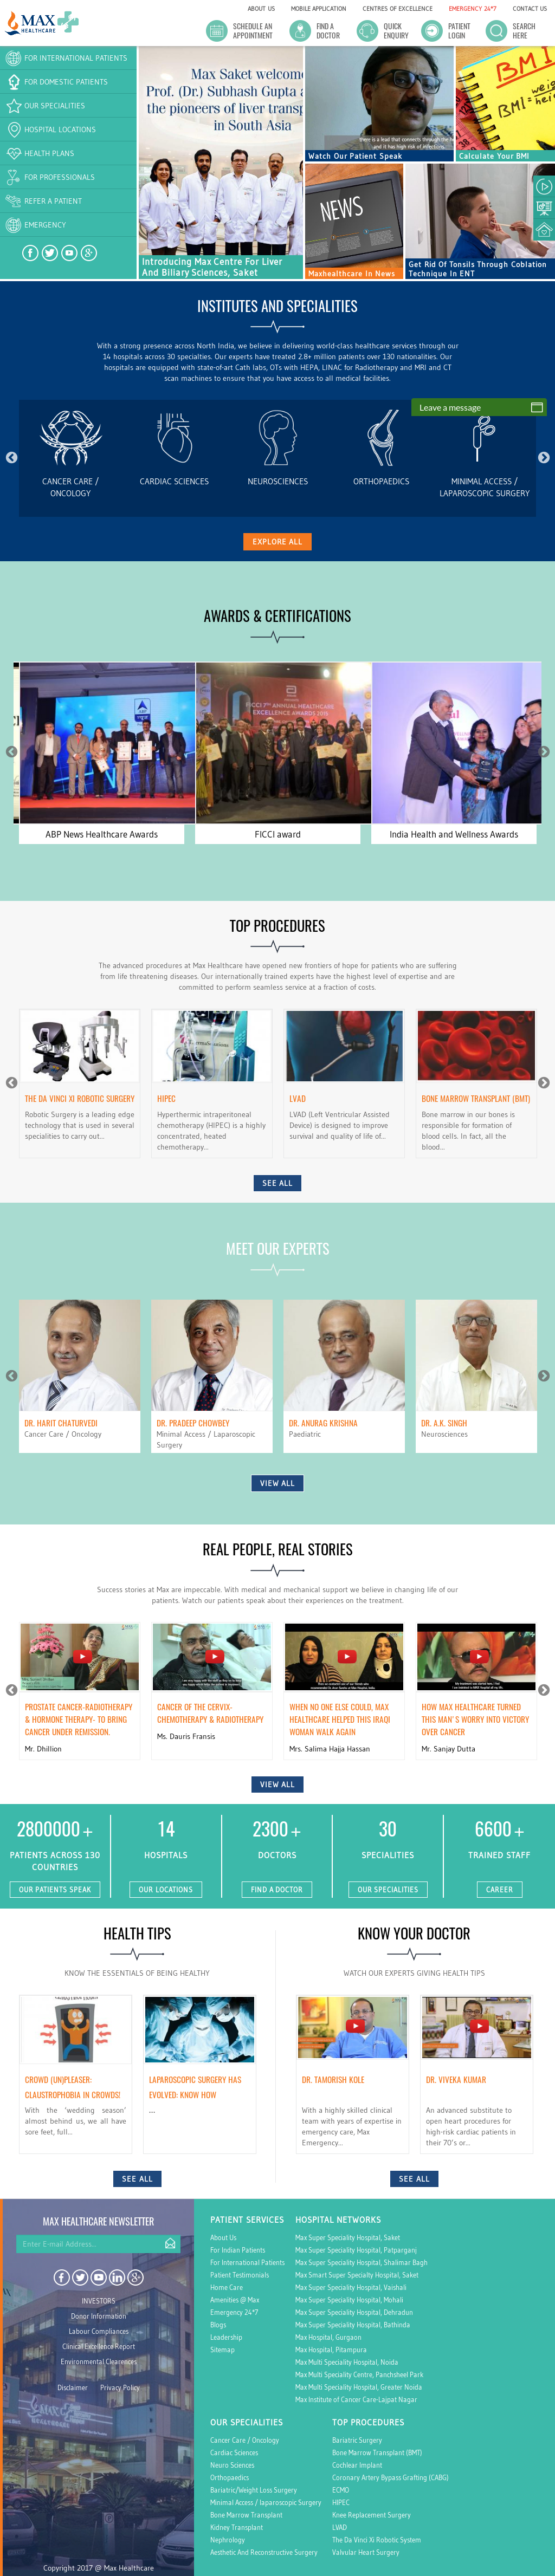 Max Healthcare Competitors, Revenue and Employees - Owler